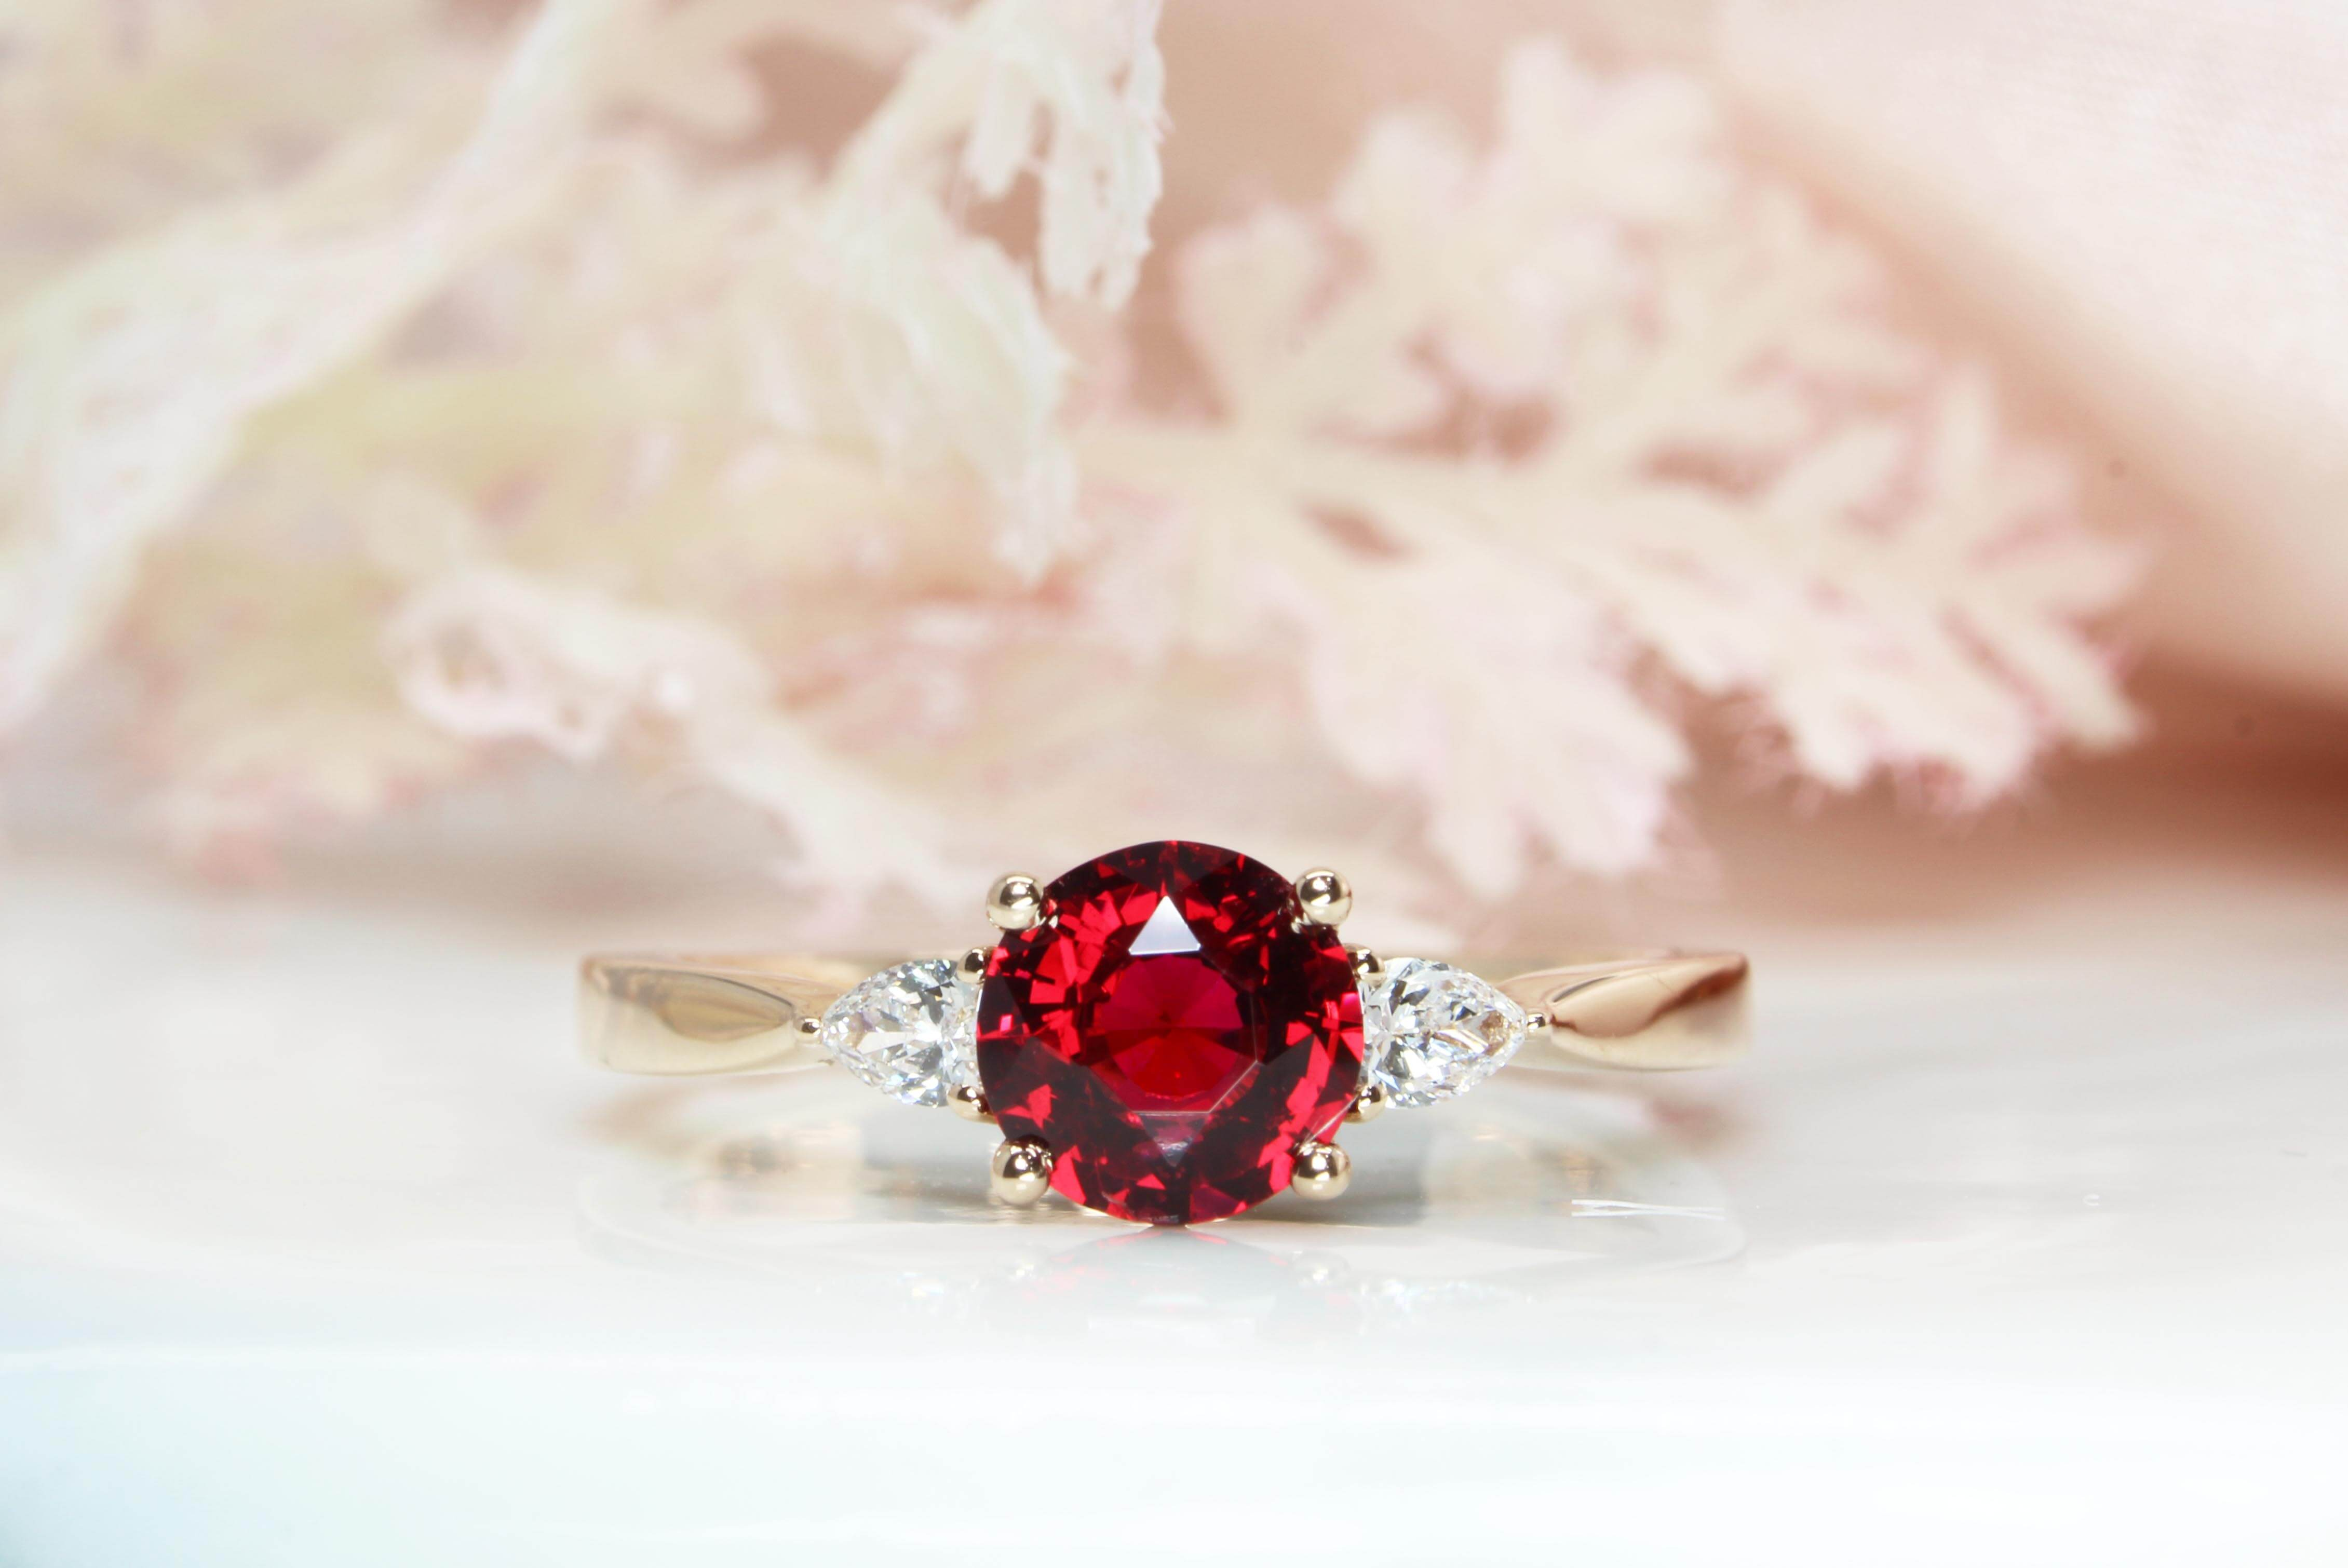 Red Spinel custom design with two pear shape diamonds, crafted in rose gold, the detailing on the side bands of the engagement ring for a proposal | Local Singapore custom made jeweller in engagement ring and wedding jewellery with spinel gemstone.